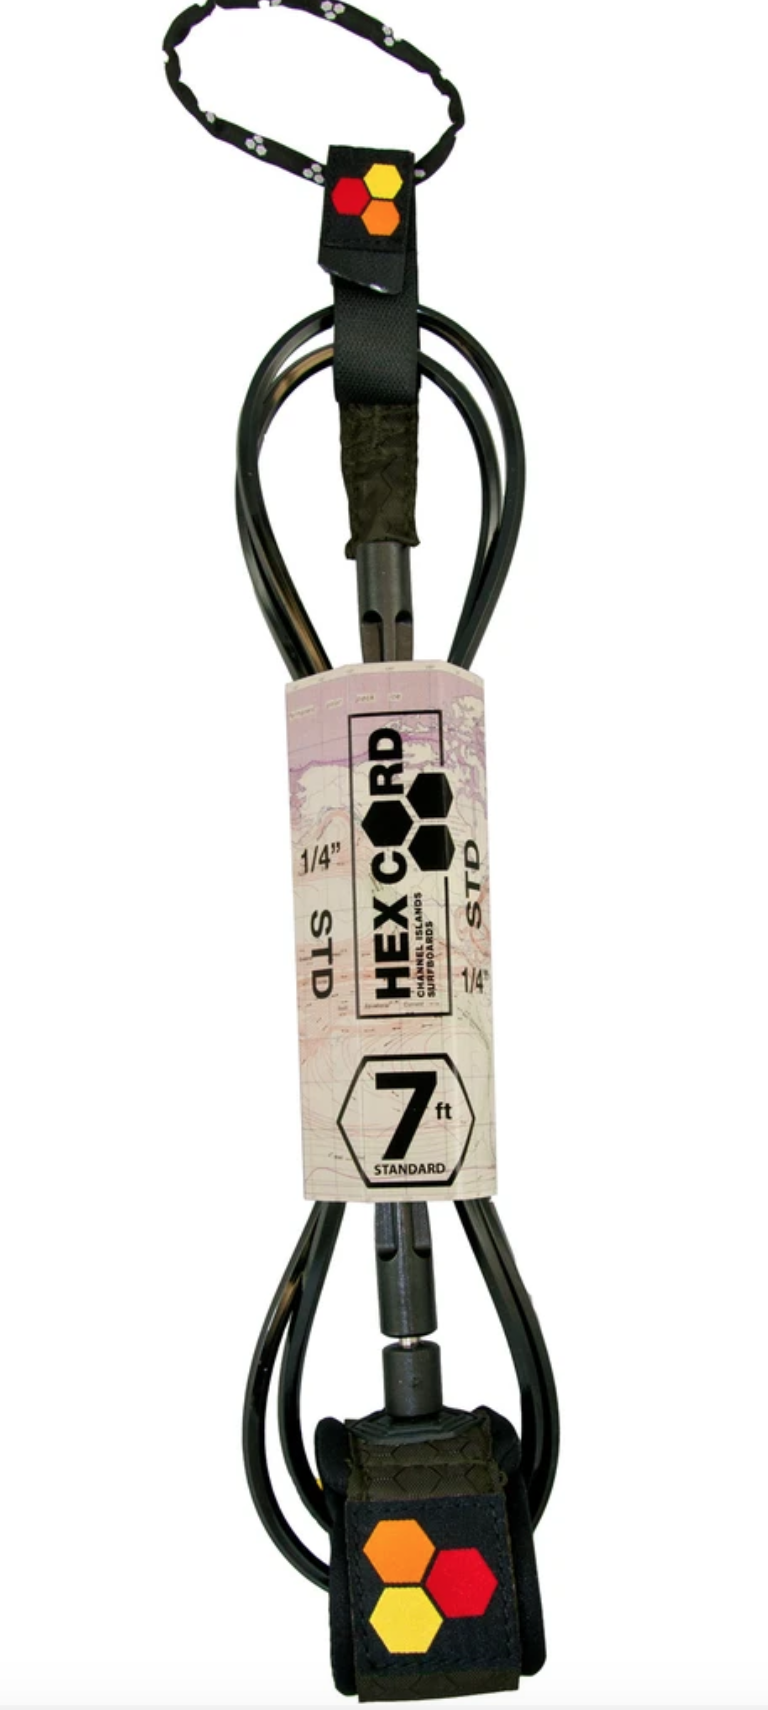 CHANNEL ISLANDS SURFBOARDS CI HEX CORD STD 7' BLK